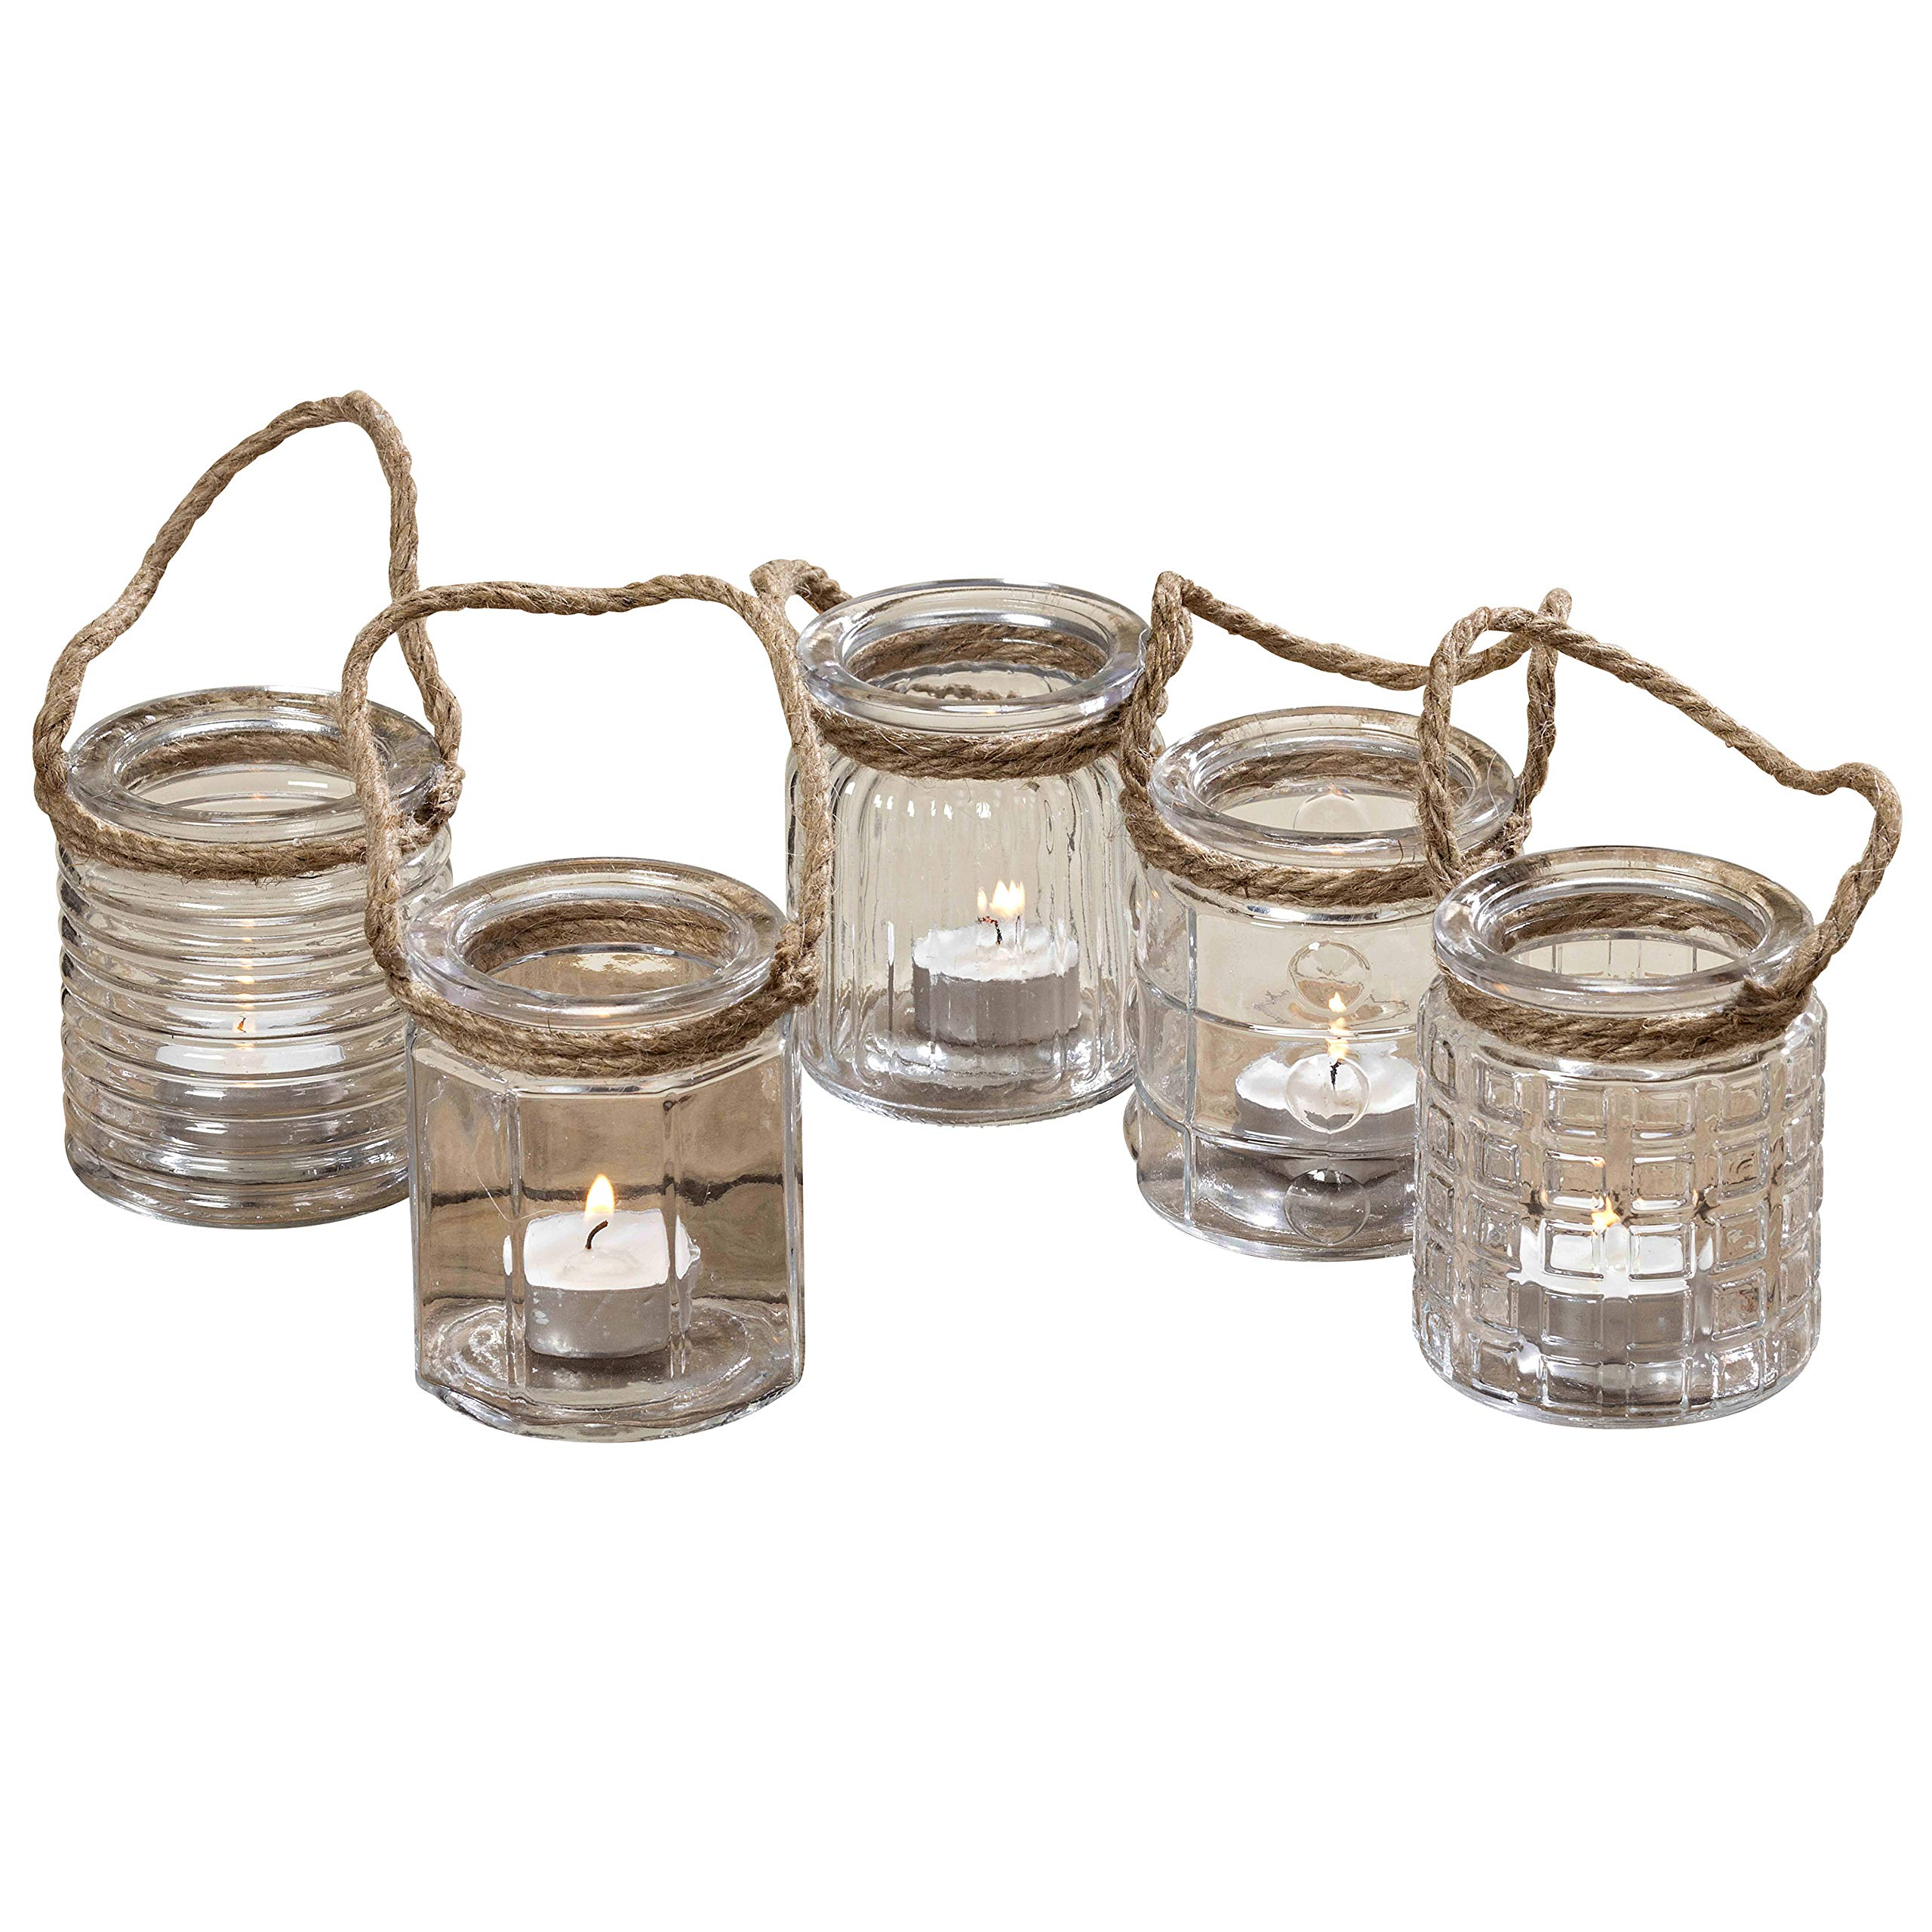 The Beach Chic Nautical Rope Hurricane Lamps, Case Pack with 40 Pieces,Clear Glass Candle Holder, for LED or Wax Votive, Pillar or Tealights, Wind Light, 2 ¾ x 2 ¾ x 3 ½ Inches, Glass, By WHW by Whole House Worlds